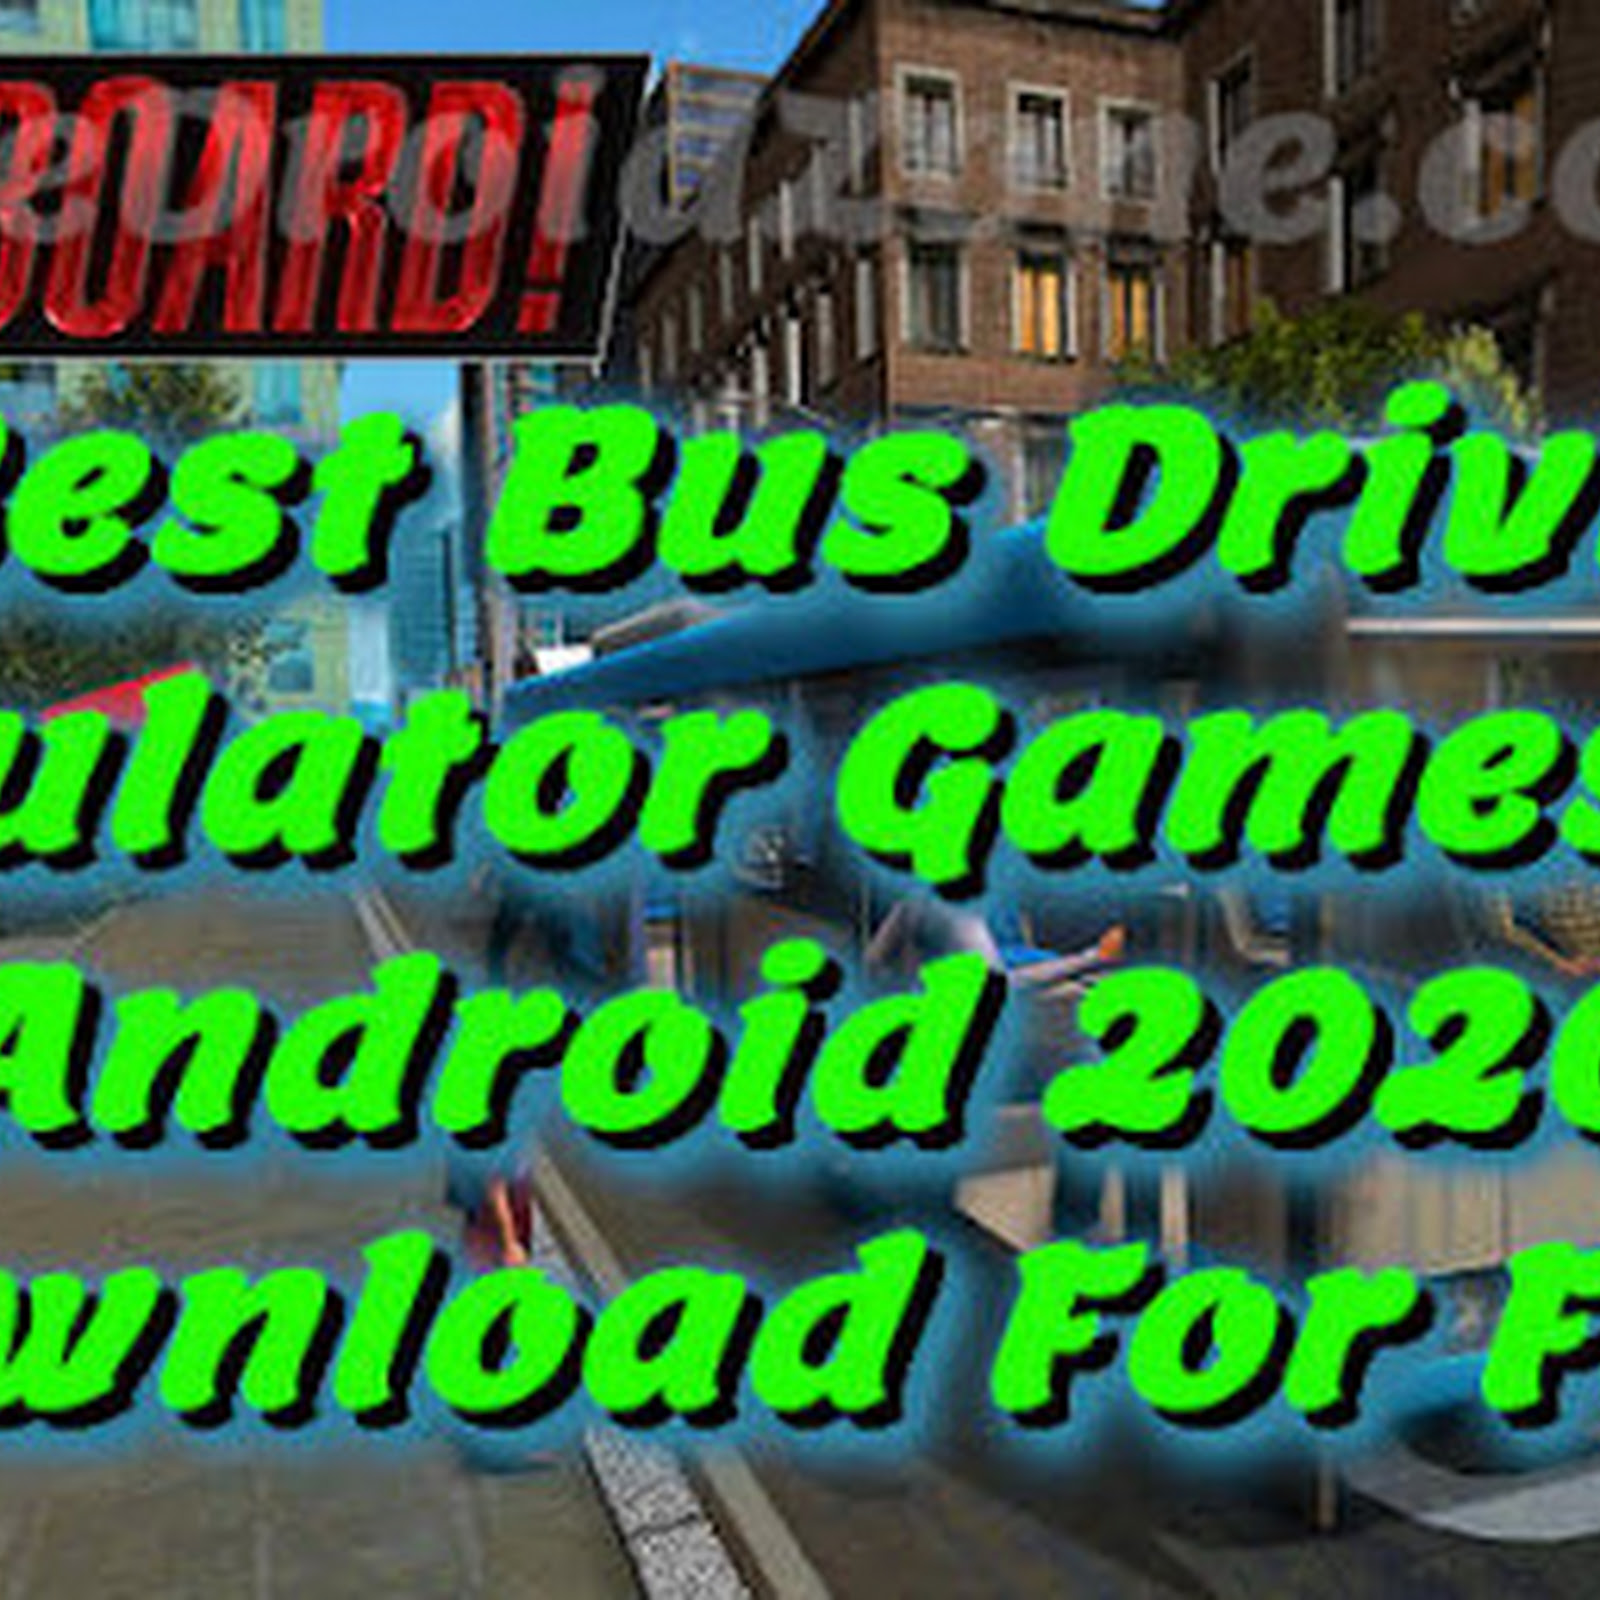 5 Best Bus Driving Simulator Games For Android 2020